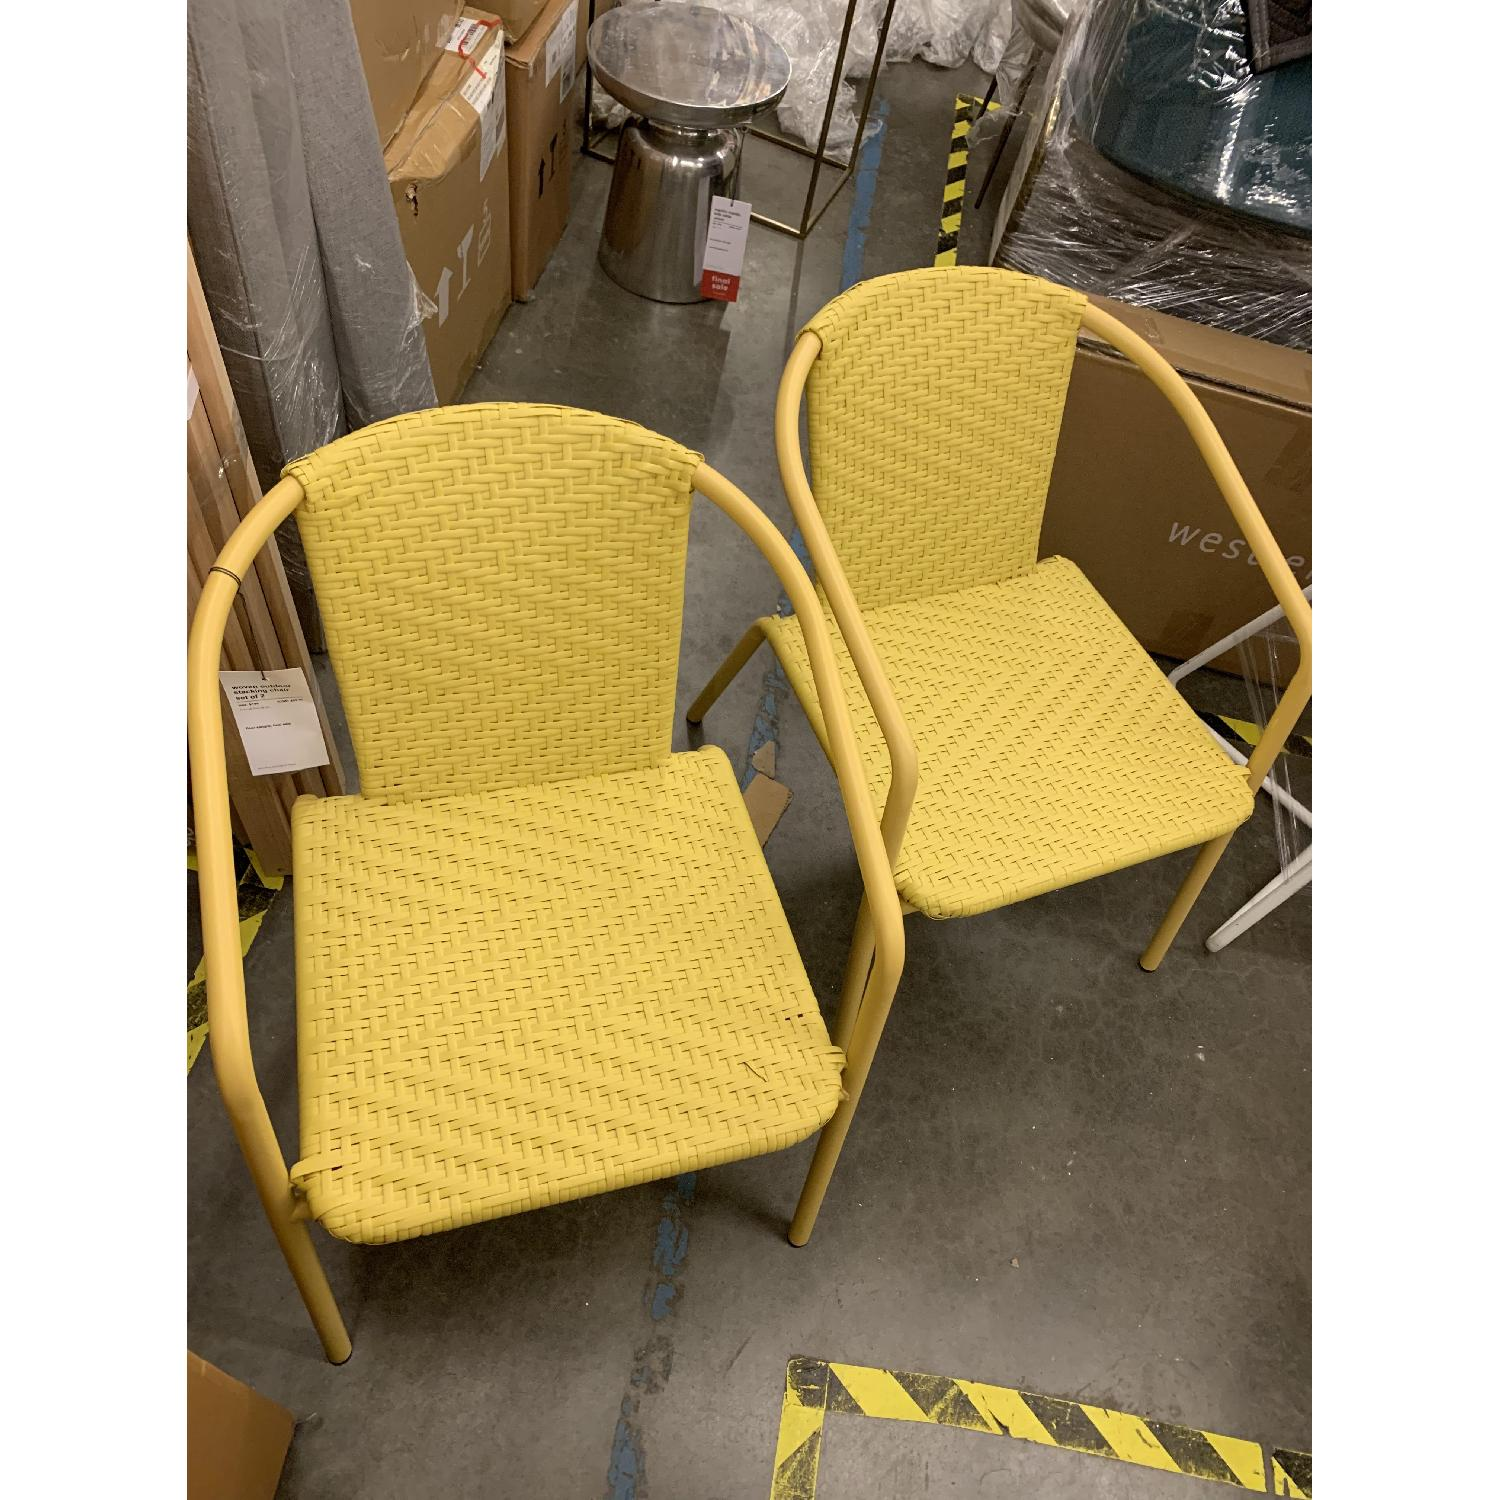 West Elm Woven Outdoor Stacking Chairs - image-3